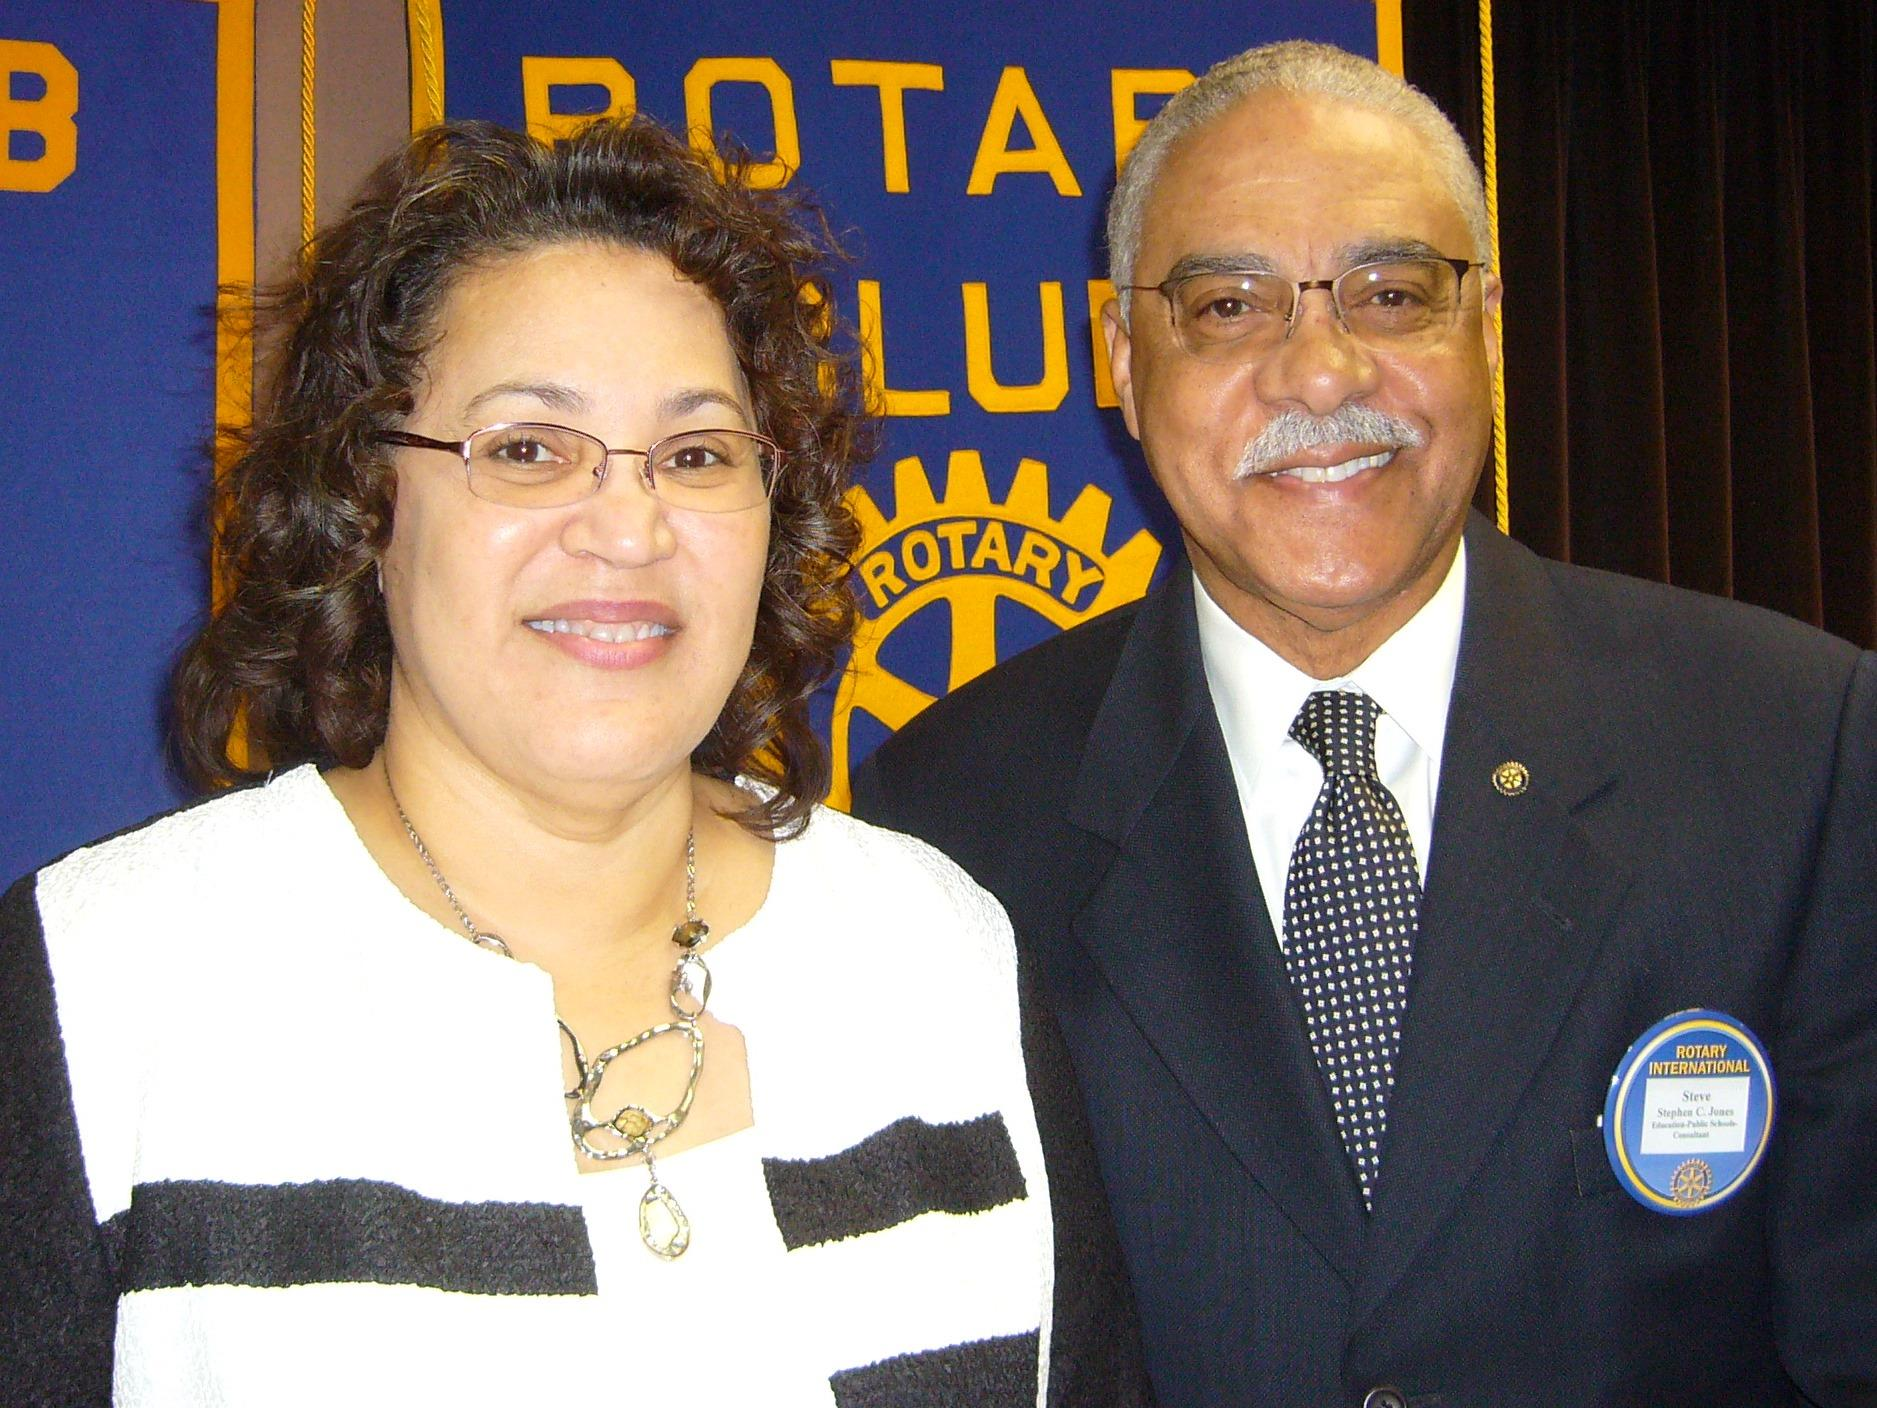 stories rotary club of norfolk cassandra newby alexander l and dr stephen jones